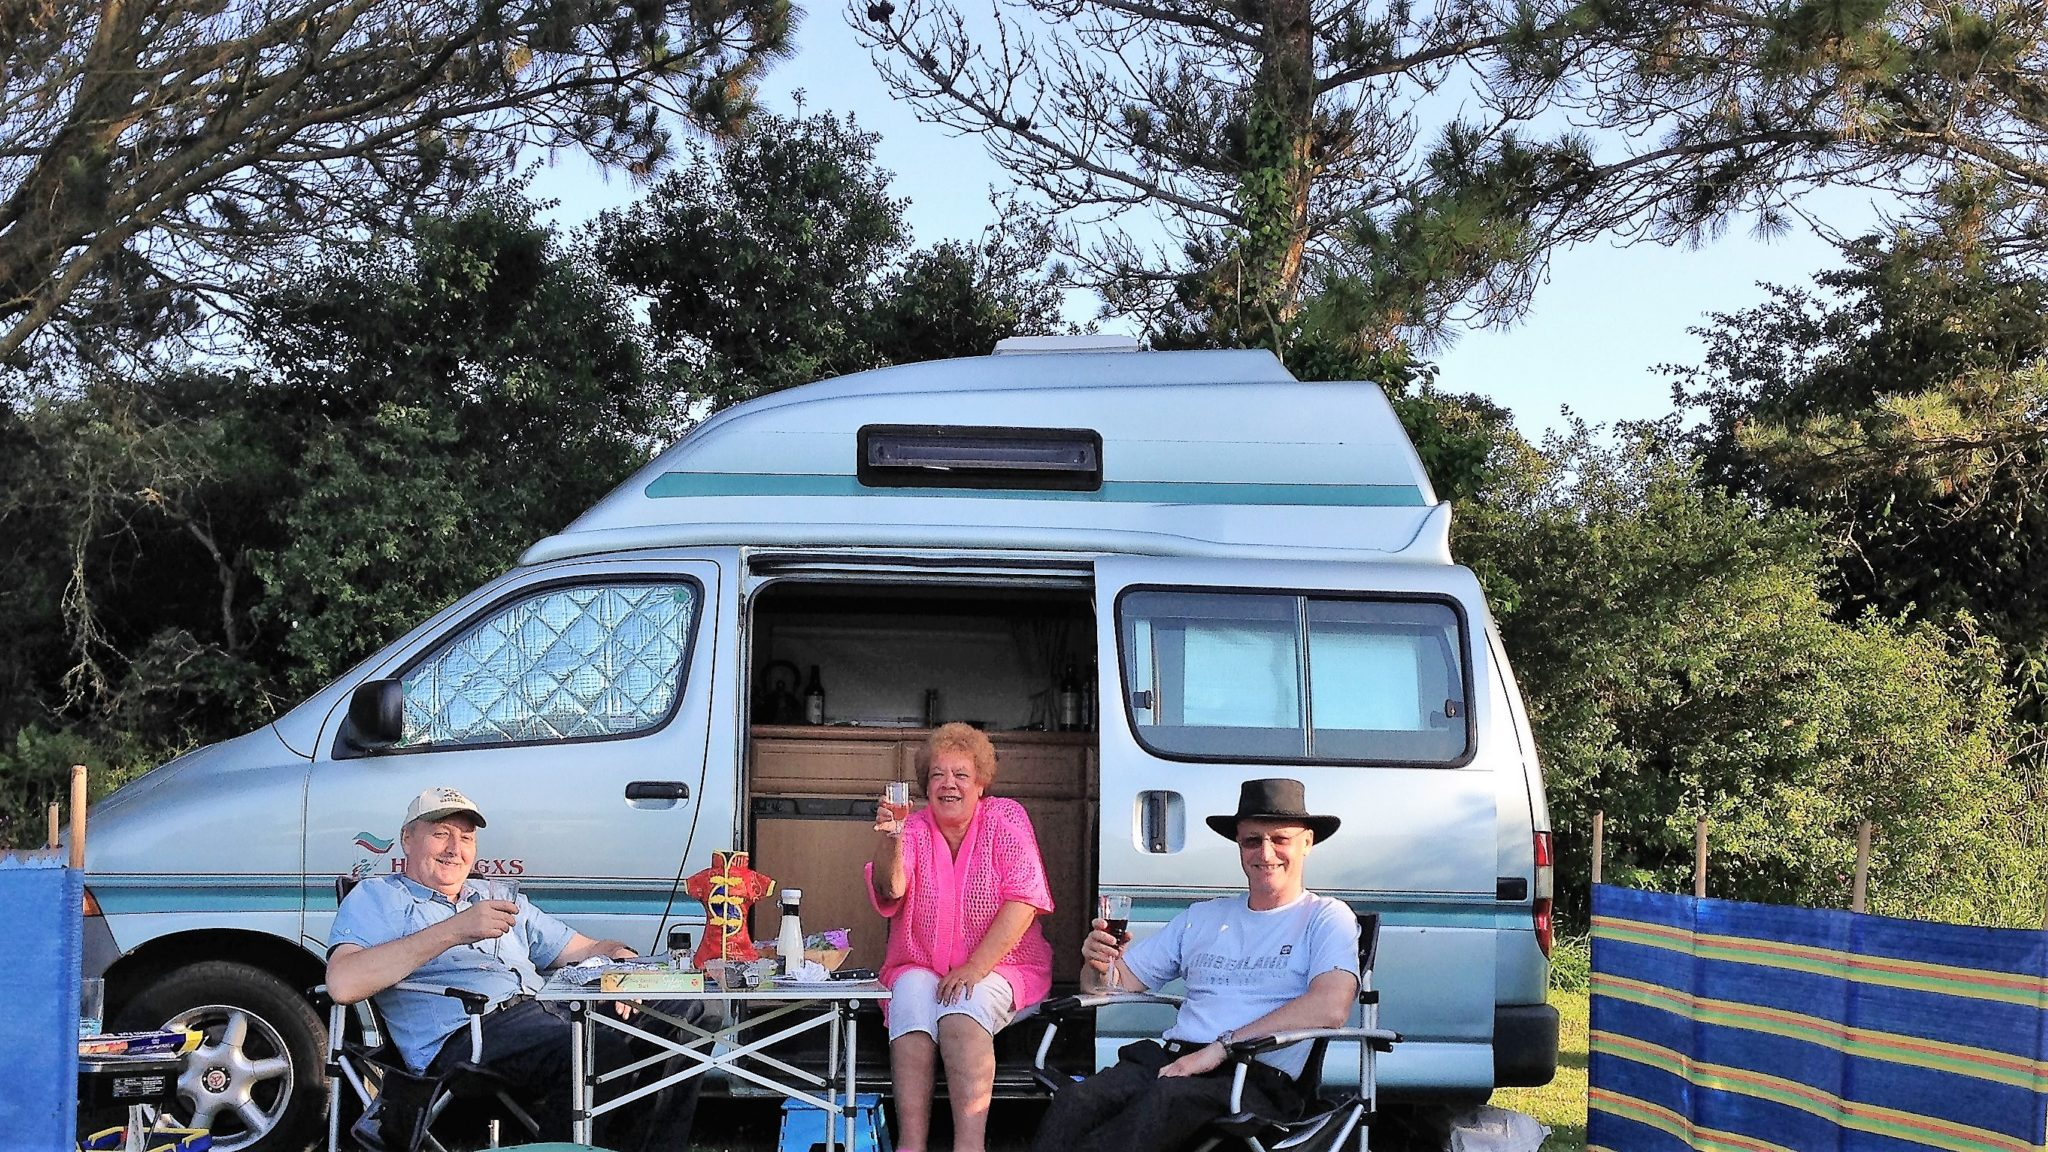 Campervan Holiday On The Lizard